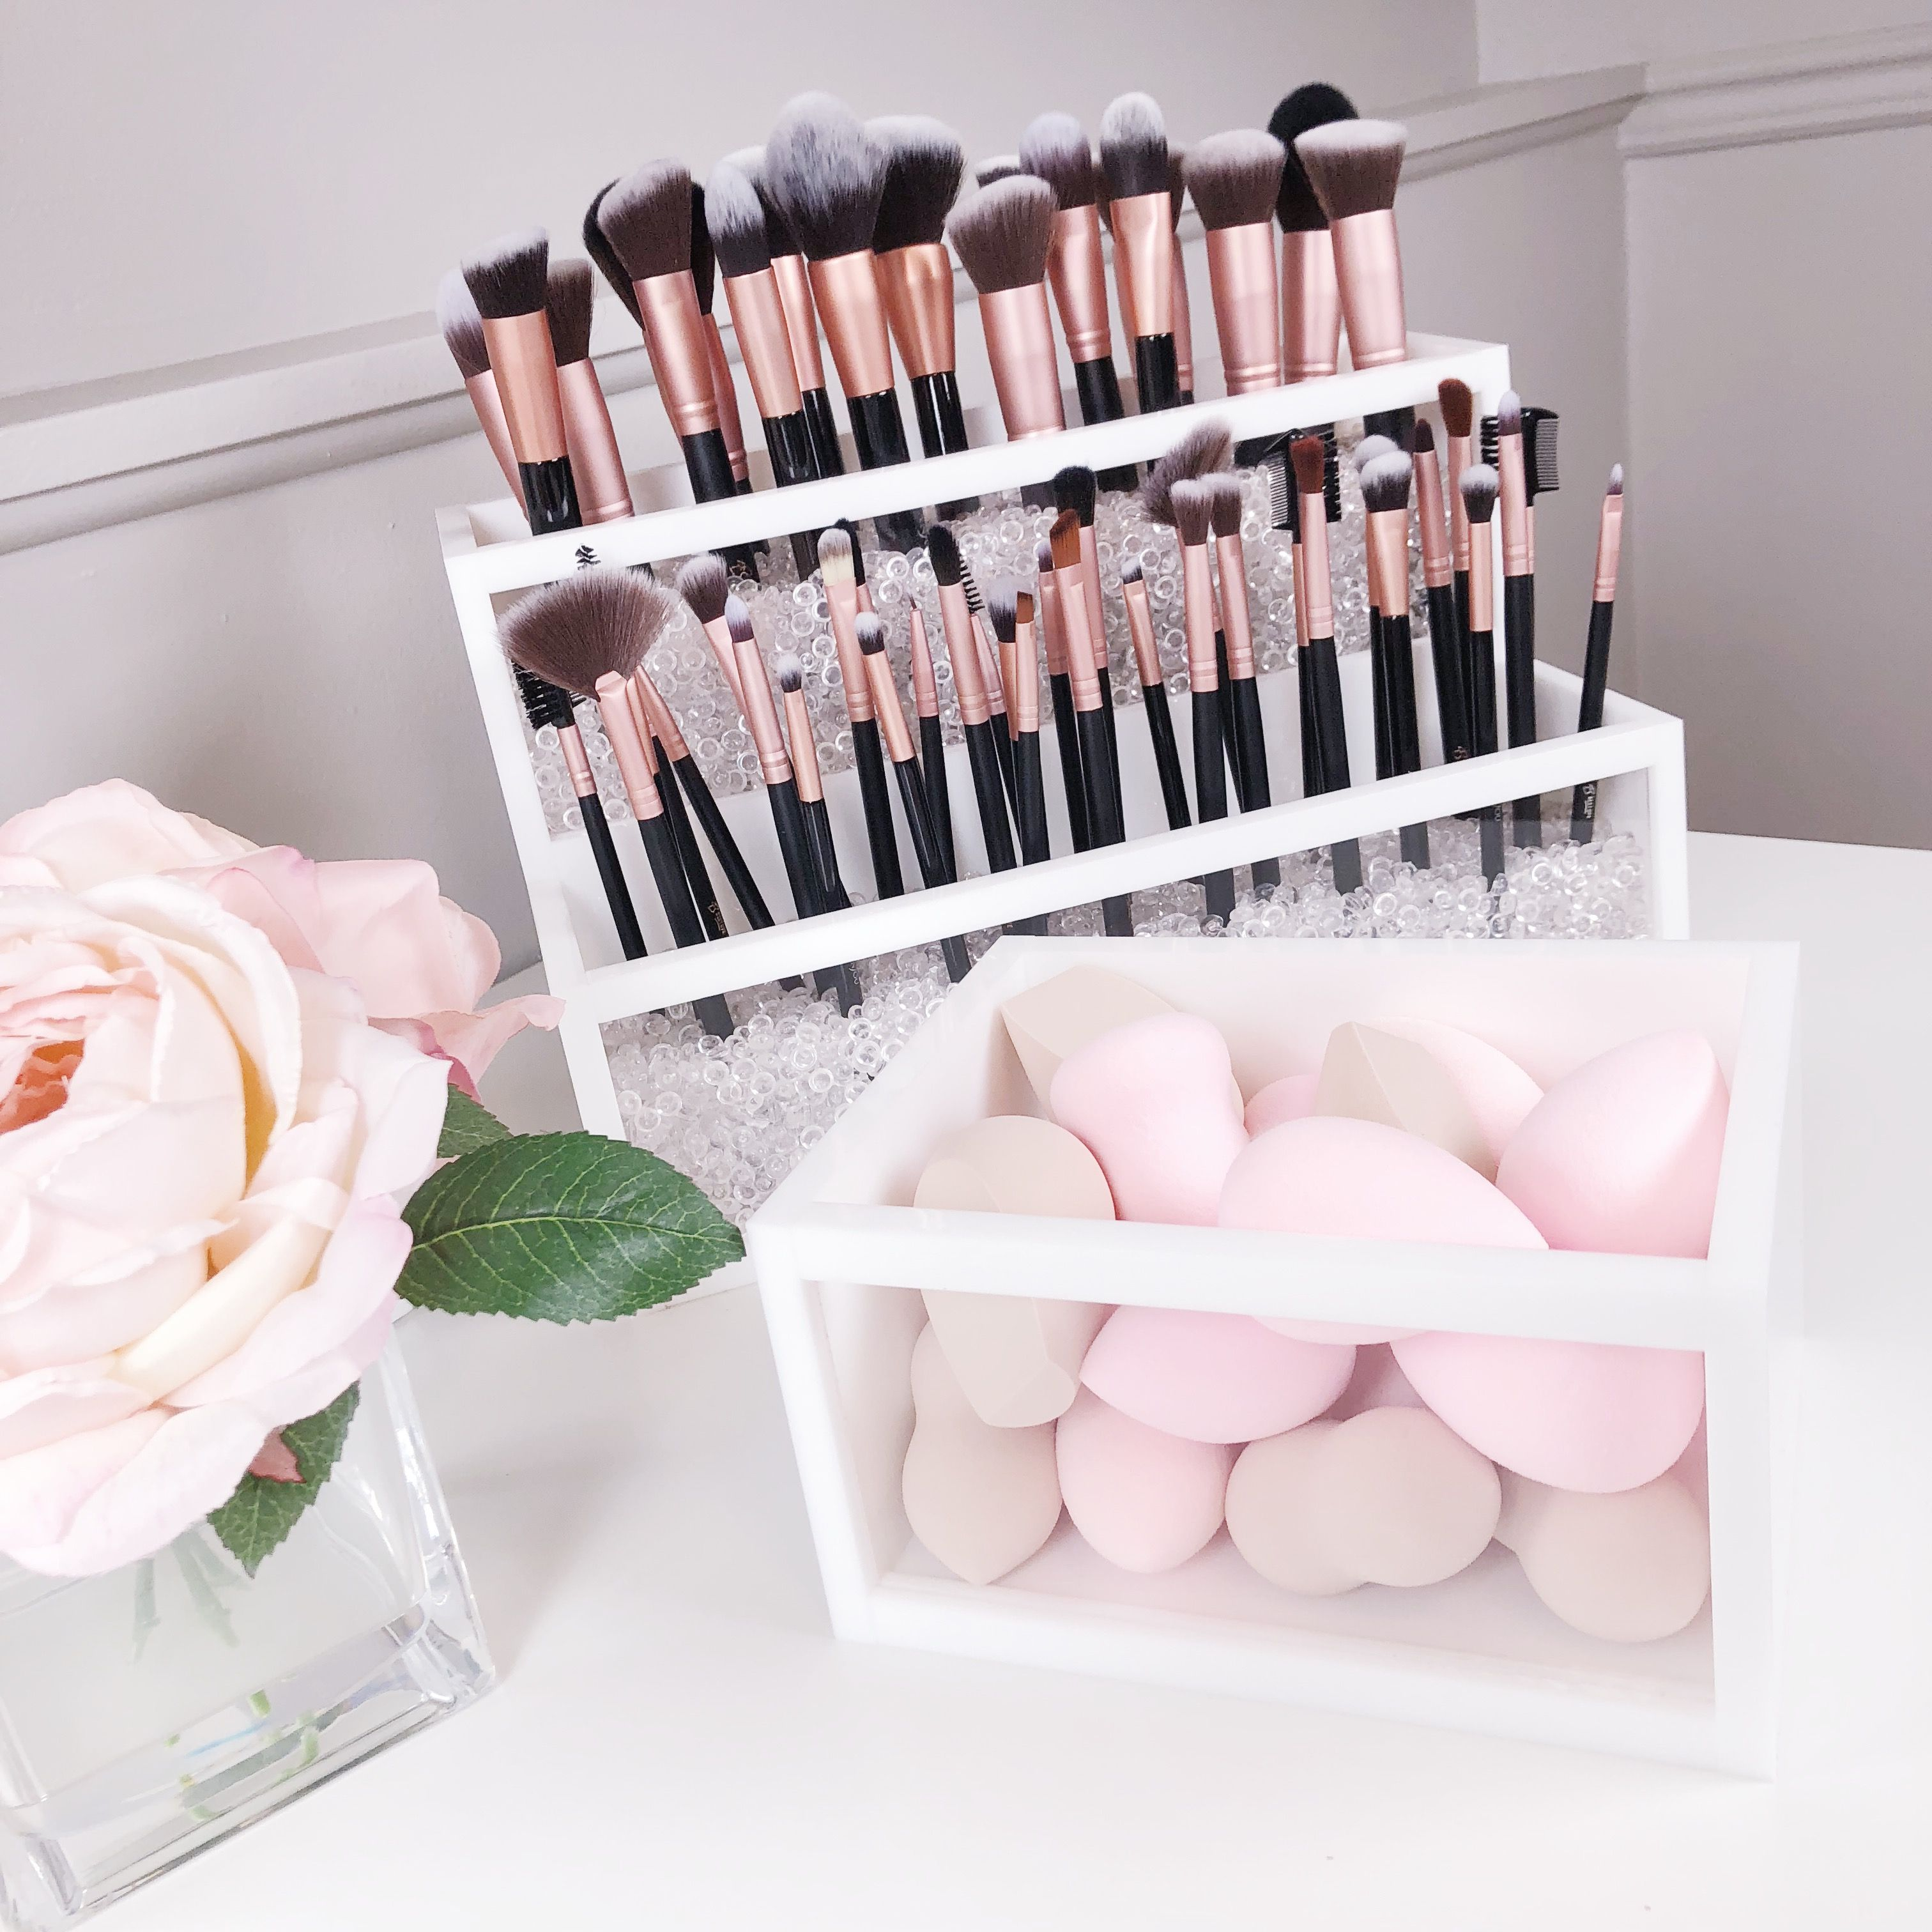 Makeup Brush Holders. Our Sofia and Mia Brush Holders make